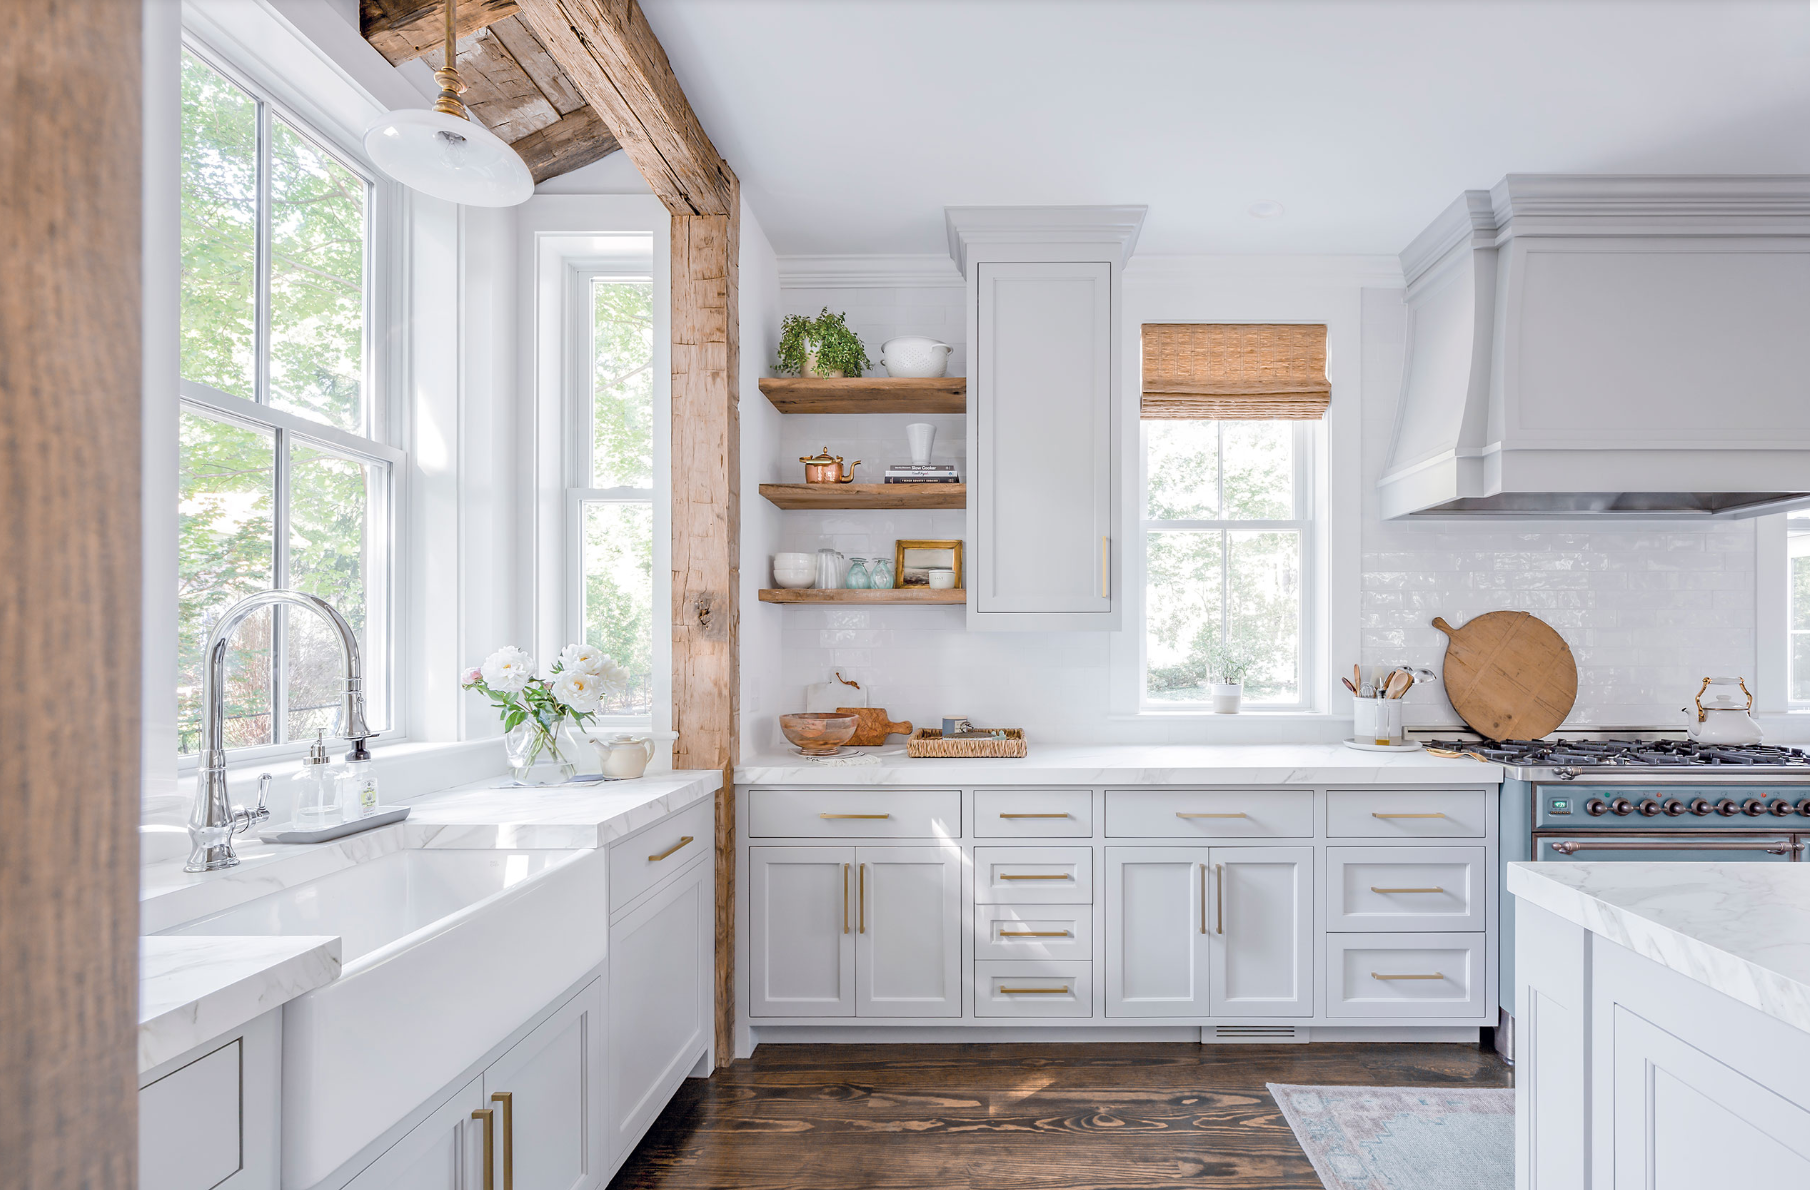 The 15 Most Beautiful Modern Farmhouse Kitchens On Pinterest Sanctuary Home Decor